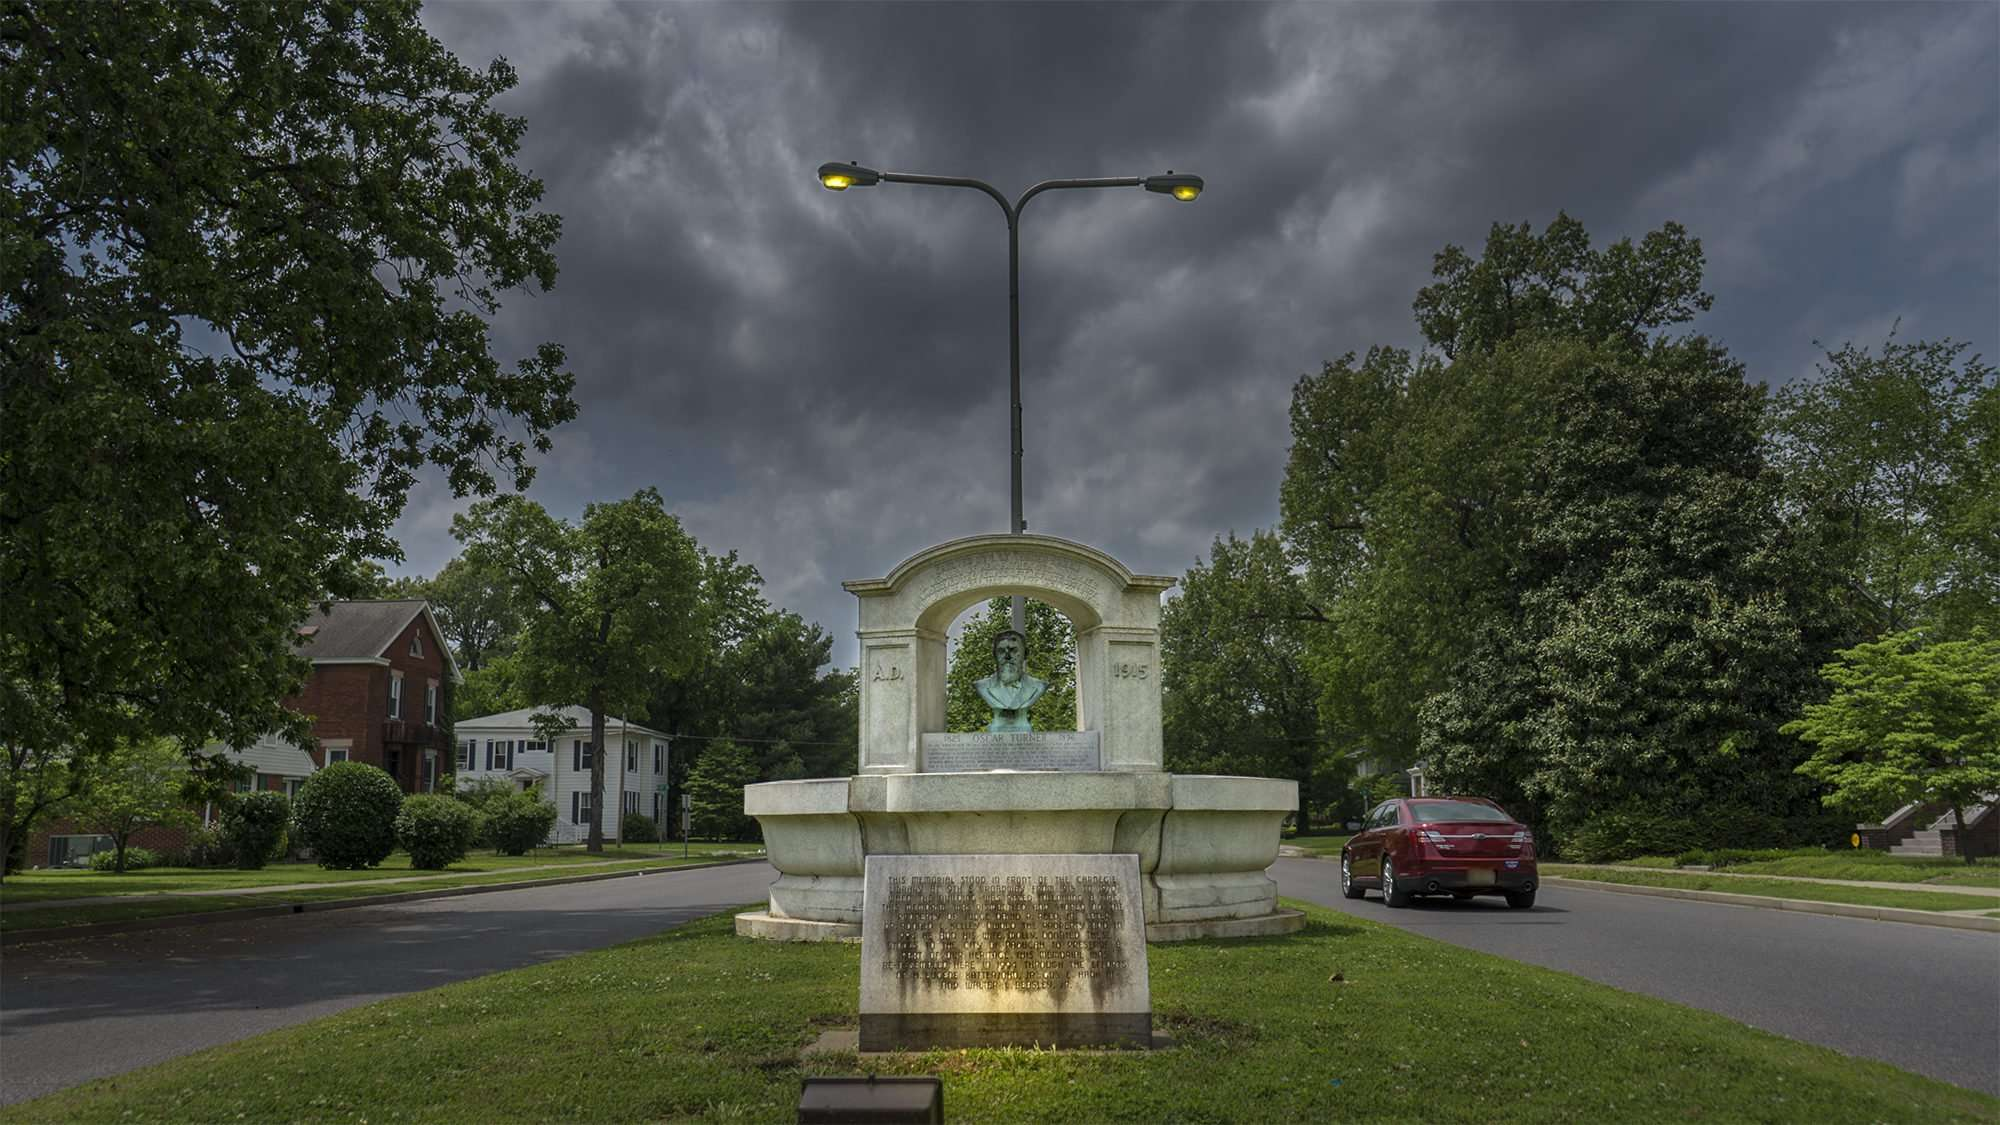 April 29, 2017 - Water fountain on Jefferson Street between 24th and 25th, Paducah, KY/photonews247.com